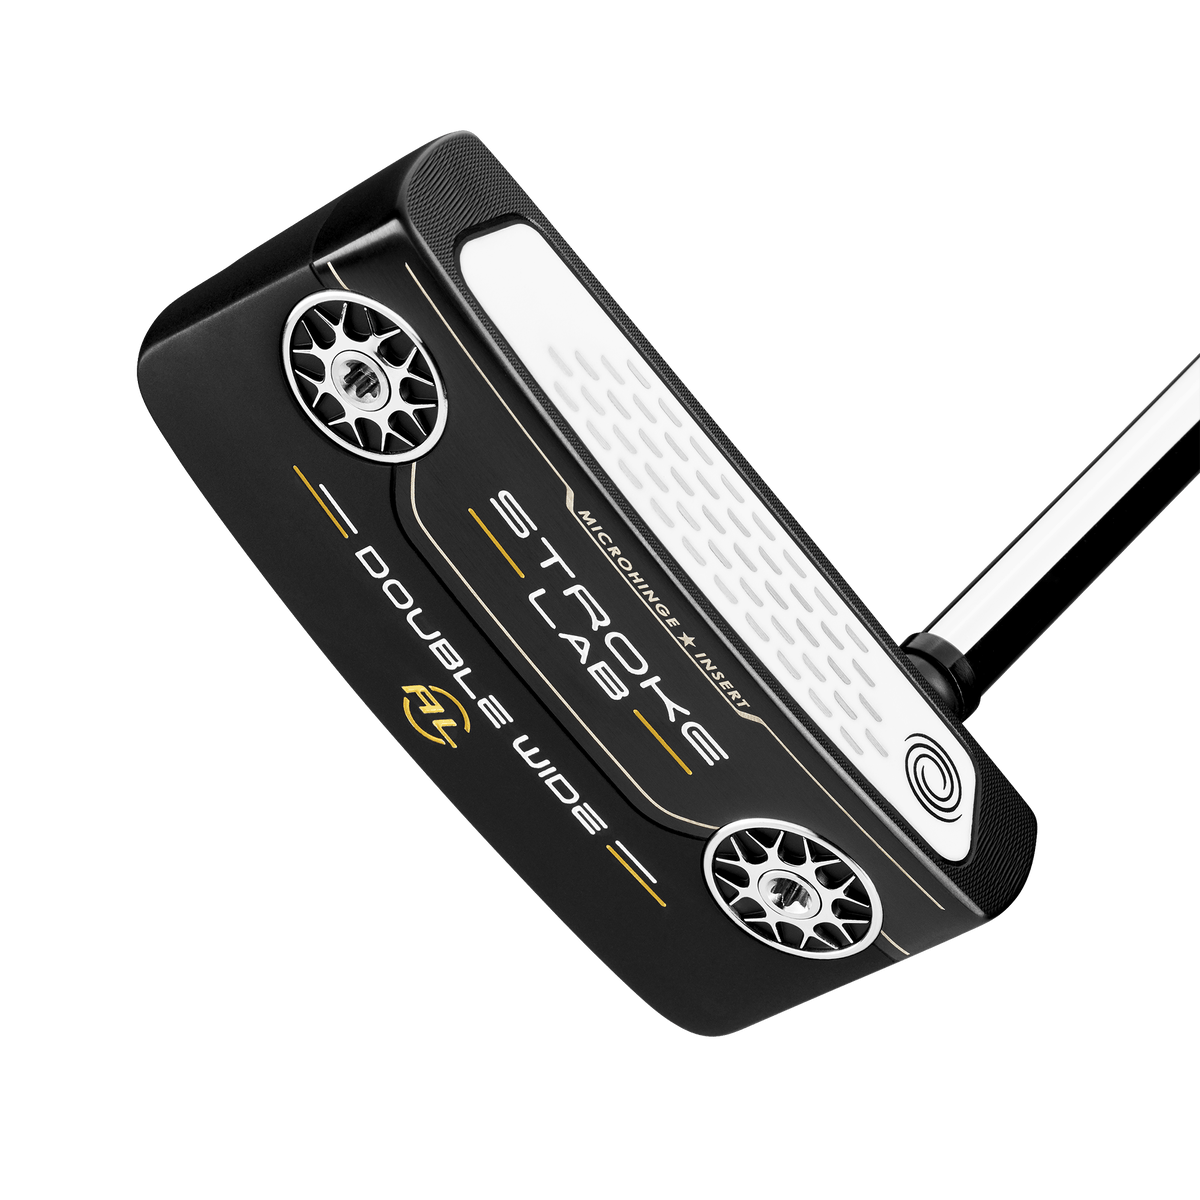 Callaway Stroke Lab Black Putter